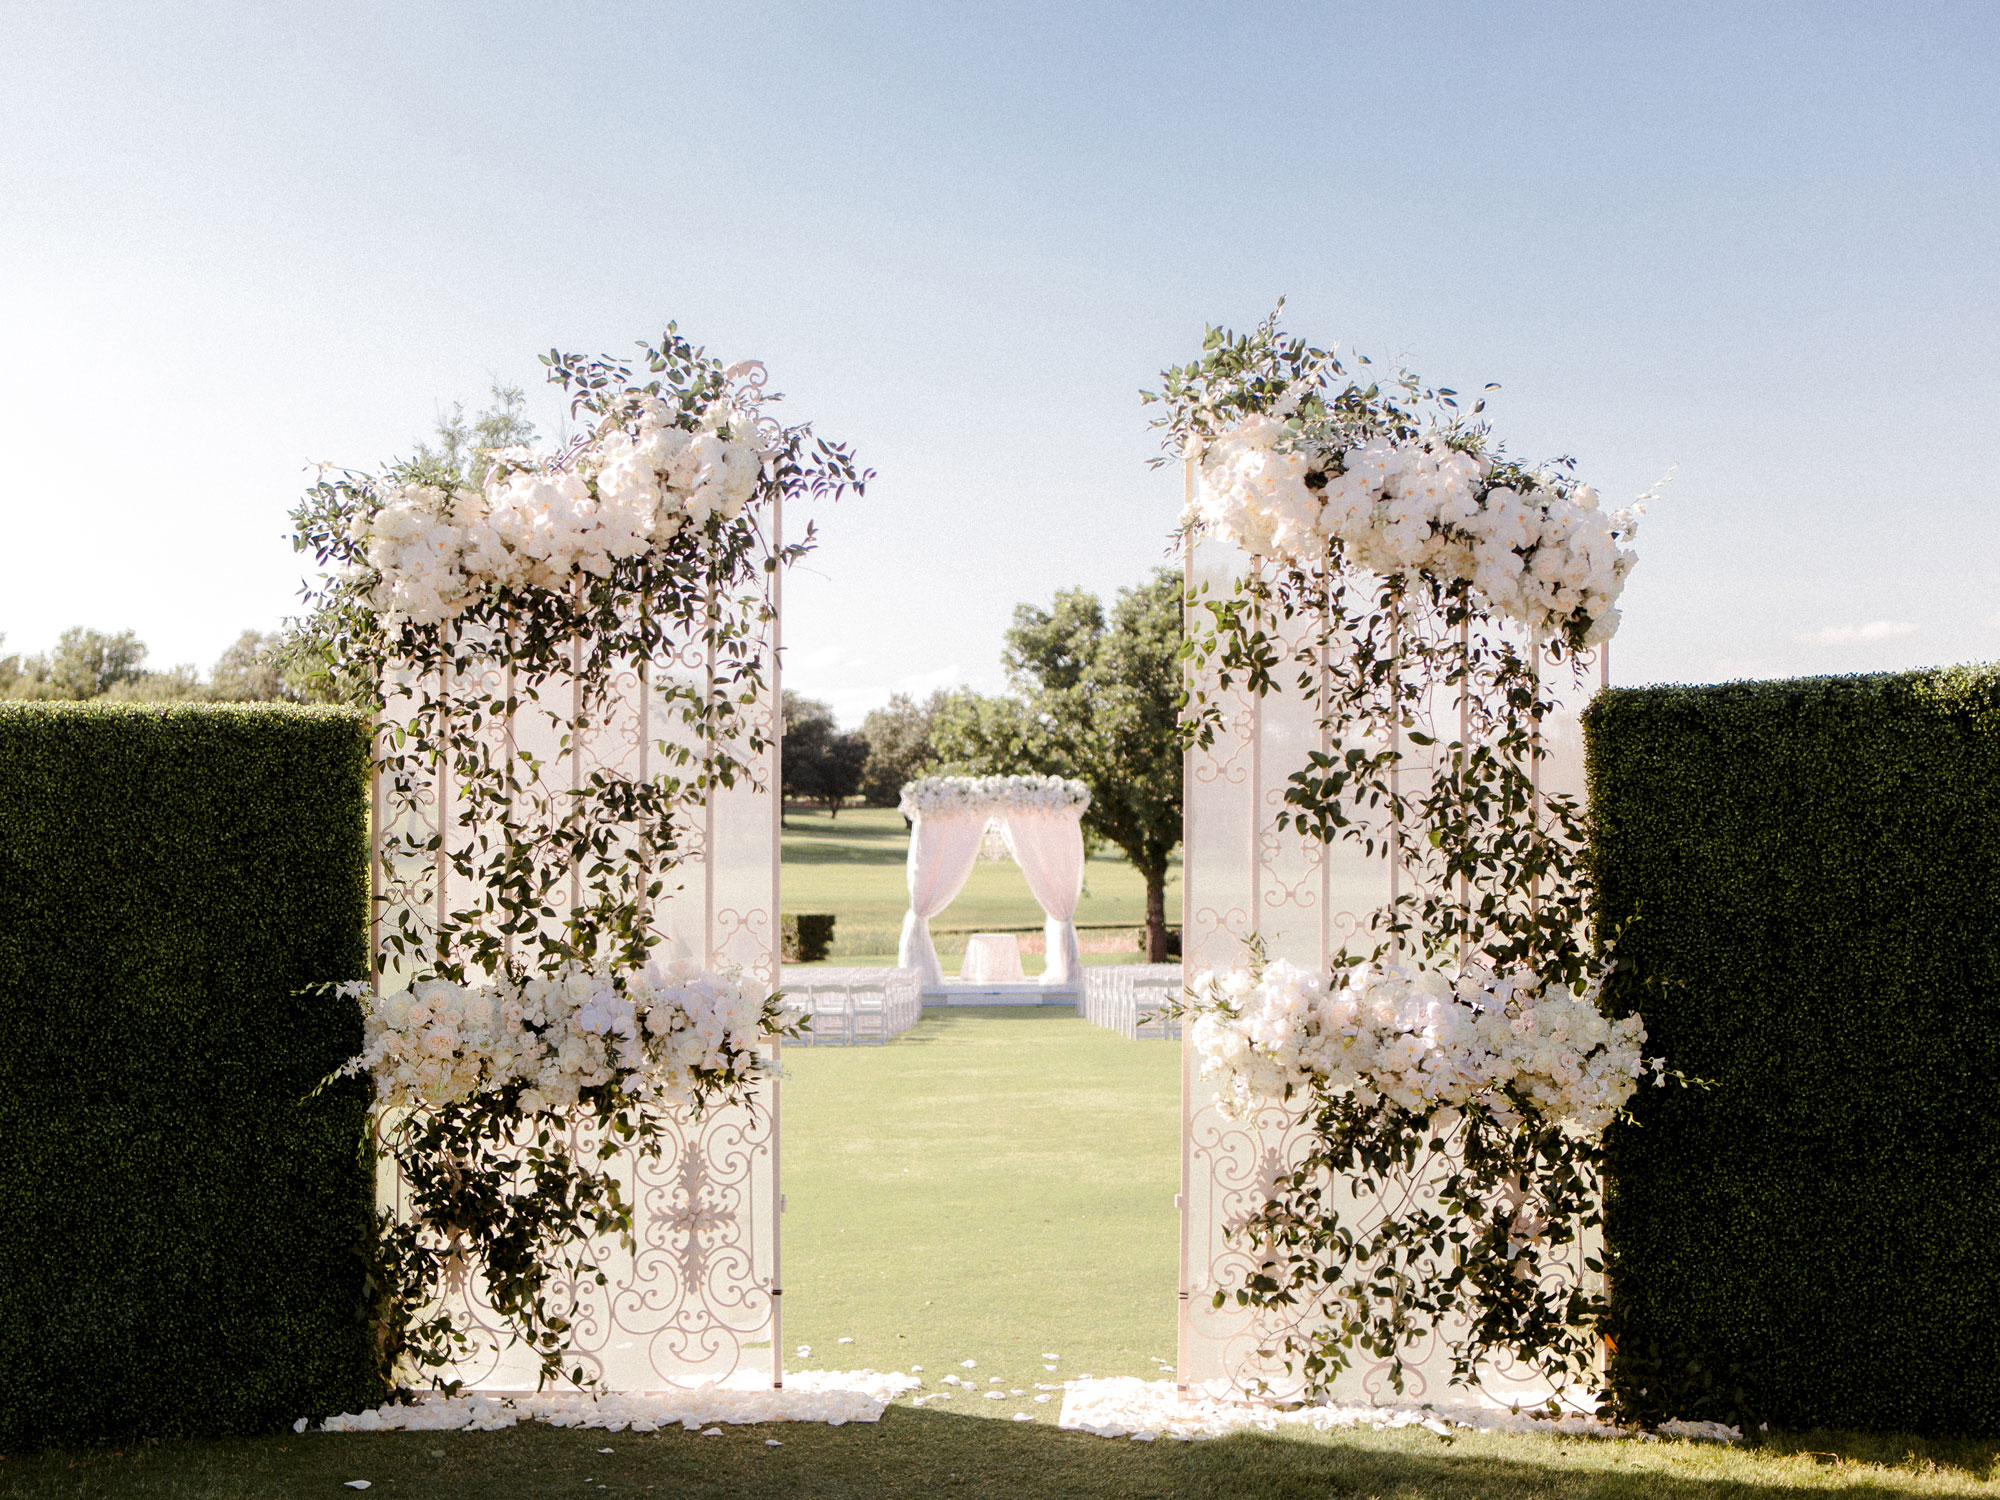 Inside Weddings Spring 2017 issue white outdoor ceremony decor with flowers on gate in grass